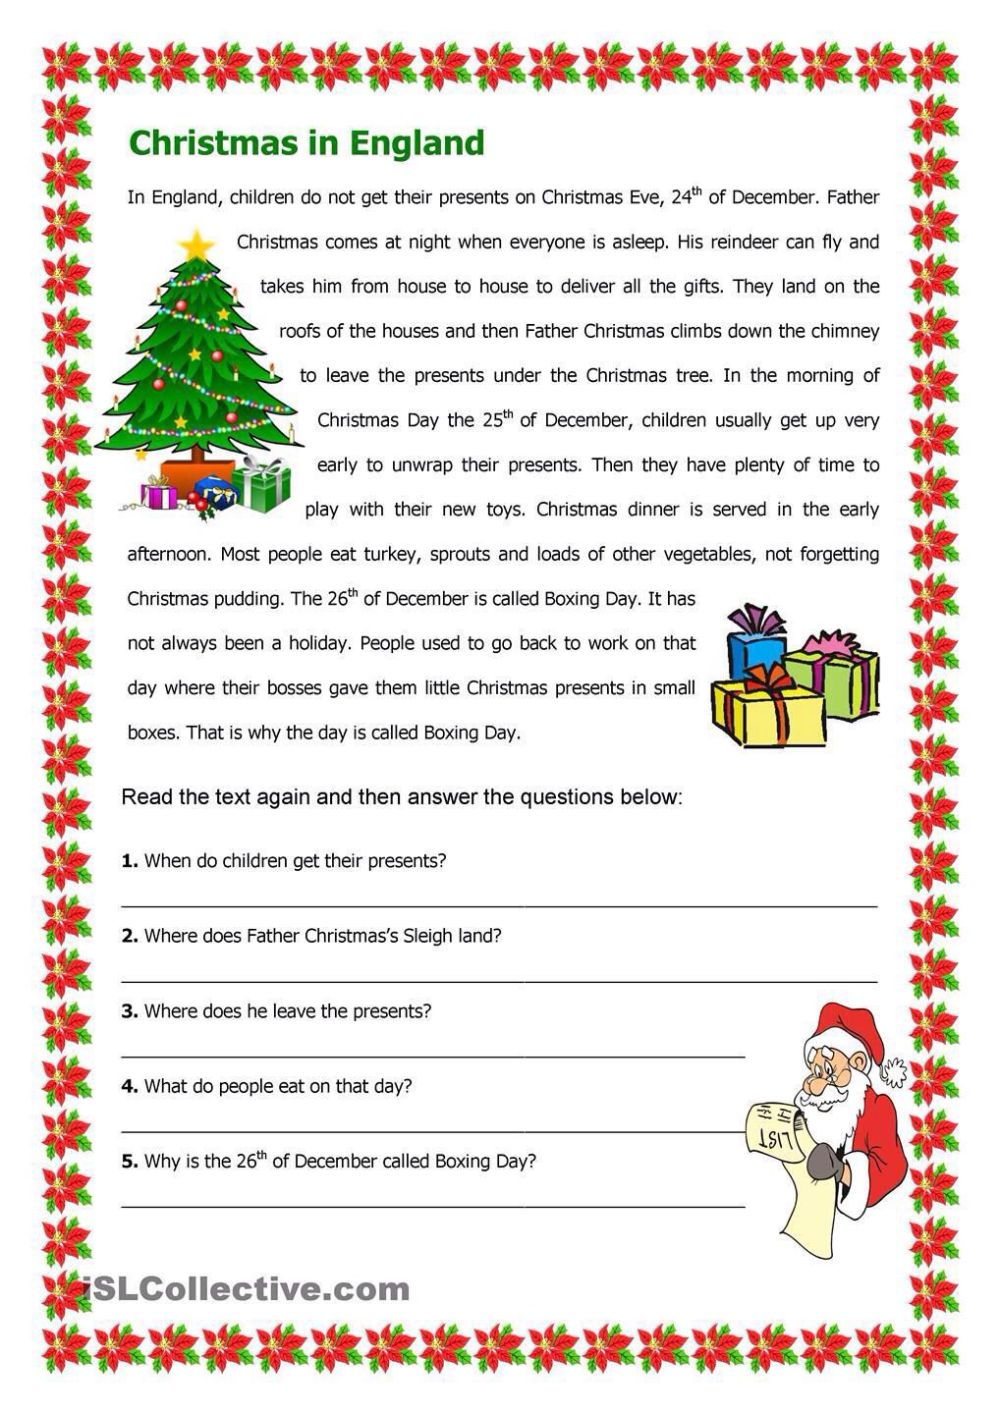 medium resolution of 15 Best Christmas Reading Worksheets images on Best Worksheets Collection